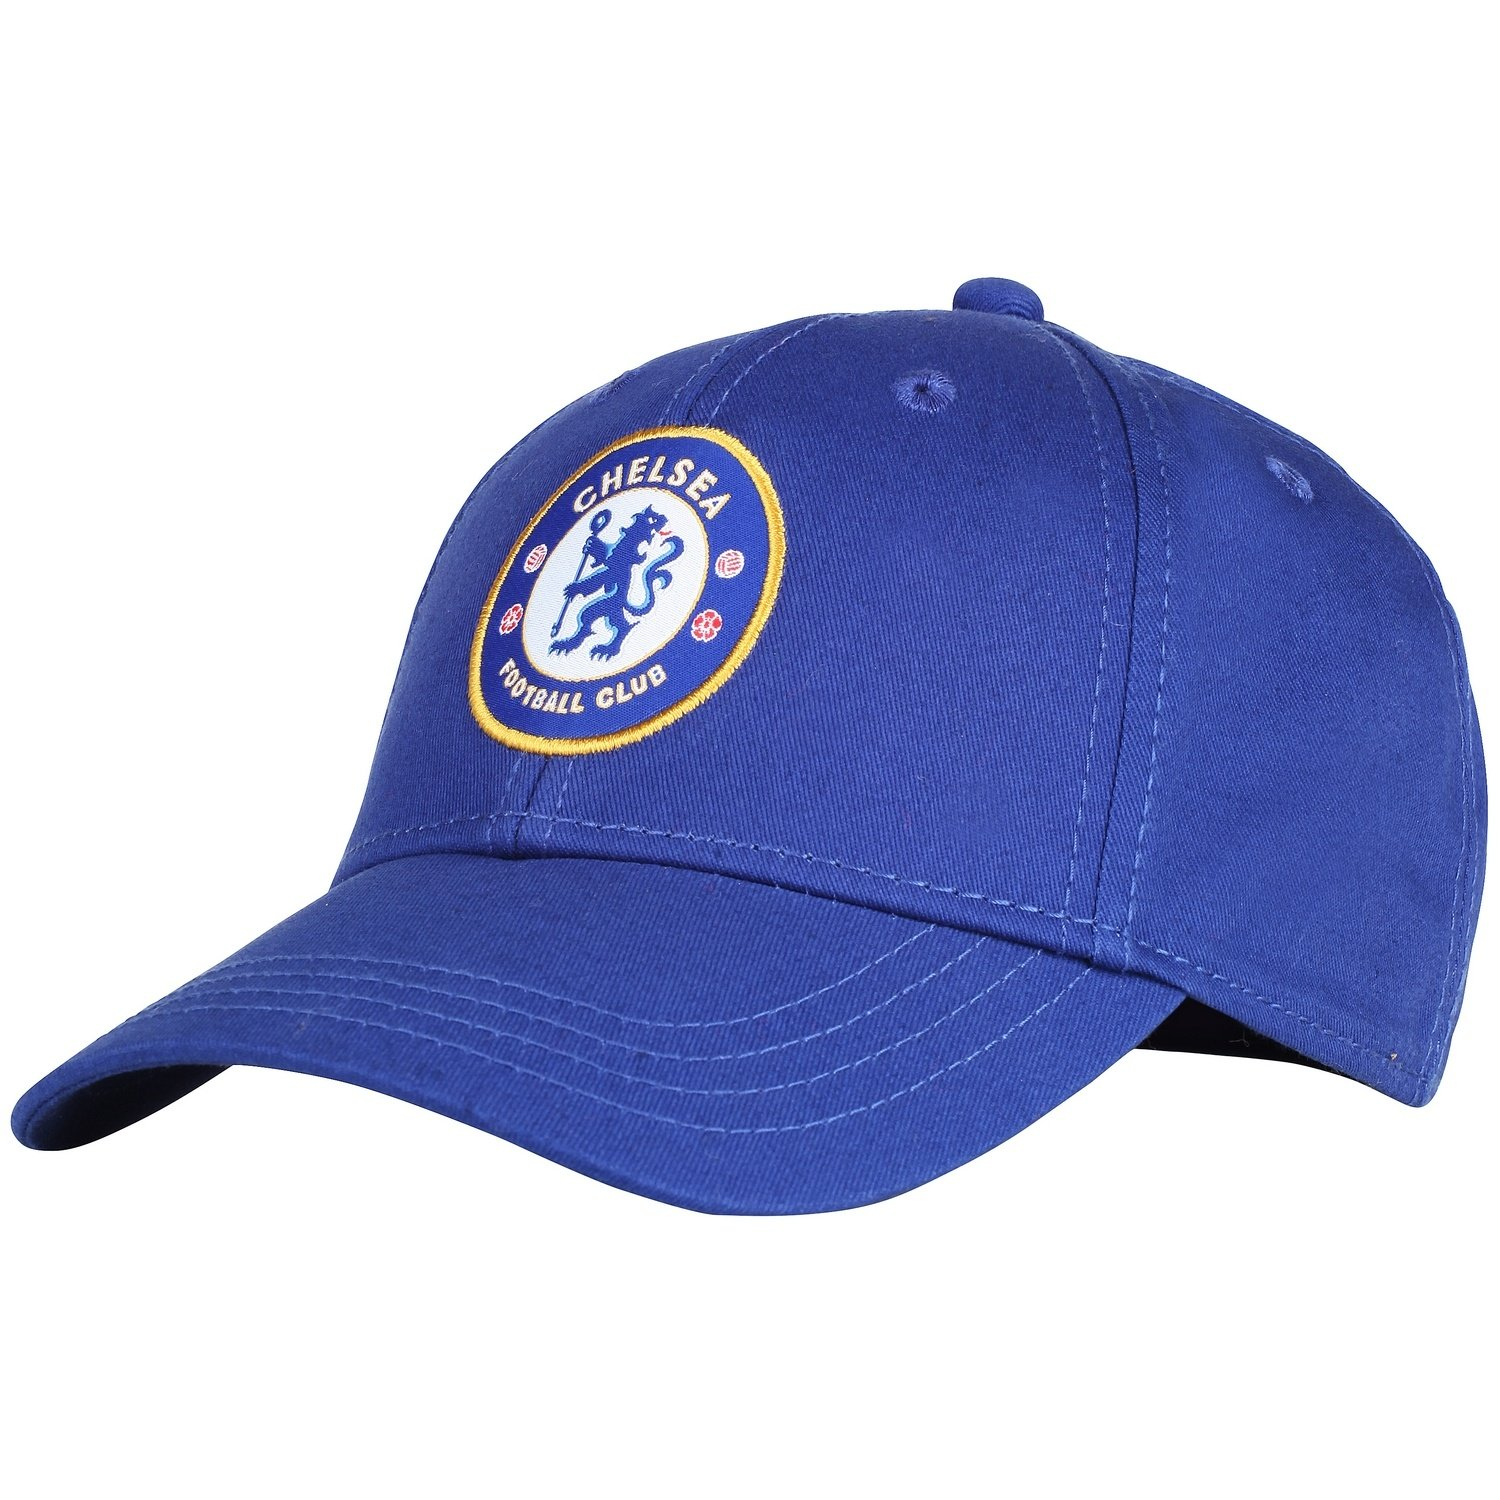 0f0b7c1d08018 Amazon.com  Official Soccer Merchandise Adult Chelsea FC Core Baseball Cap  (One Size) (Royal Blue)  Clothing